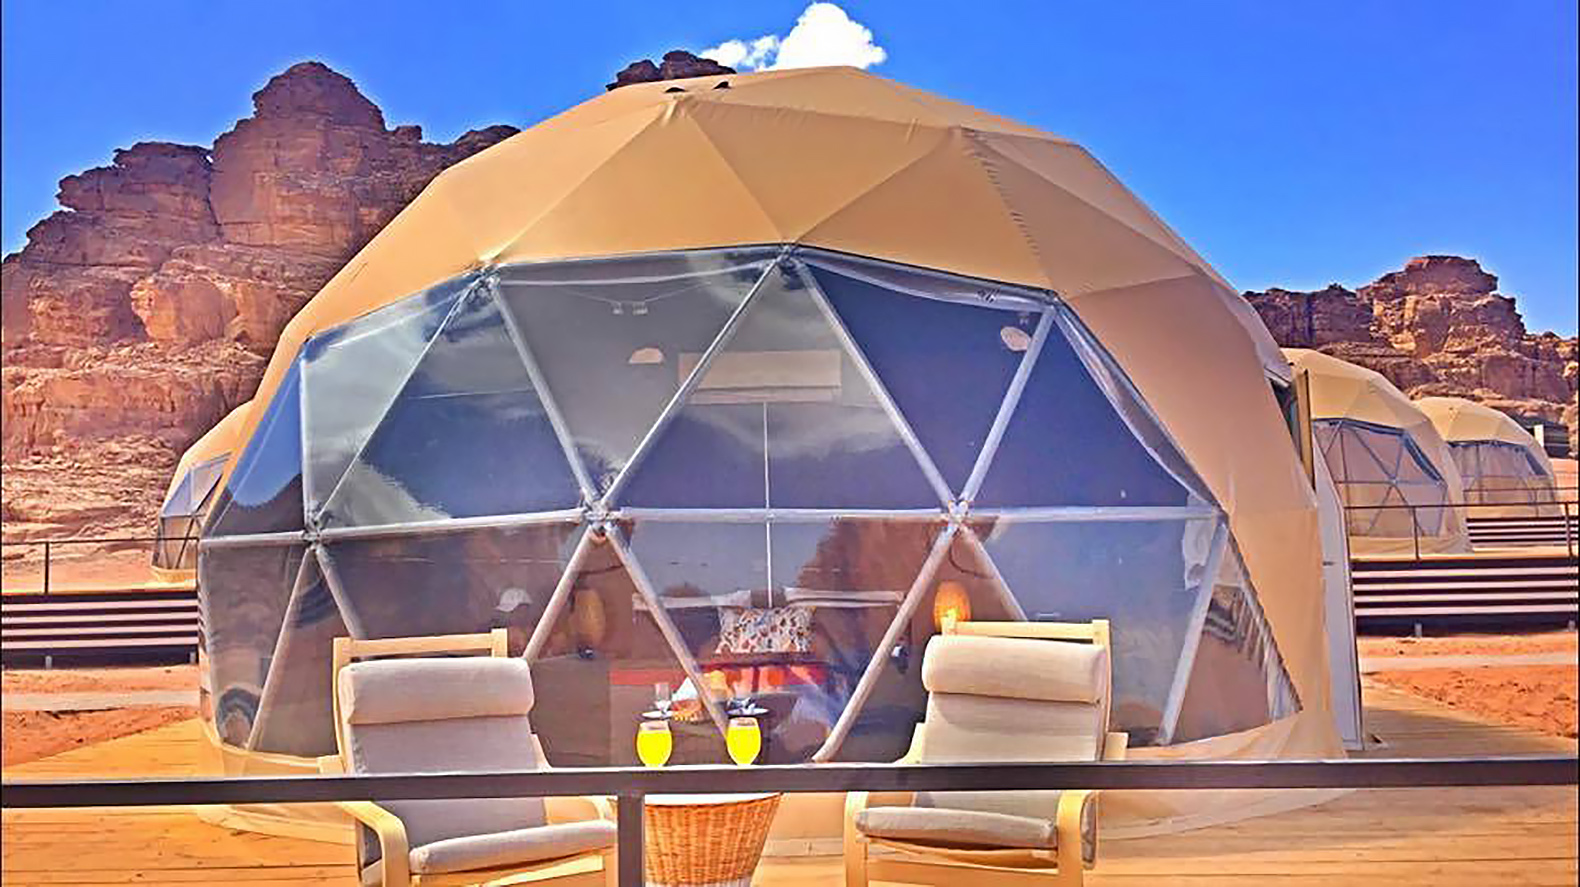 """Desert dome camp in Jordan offers tourists """"The Martian ..."""